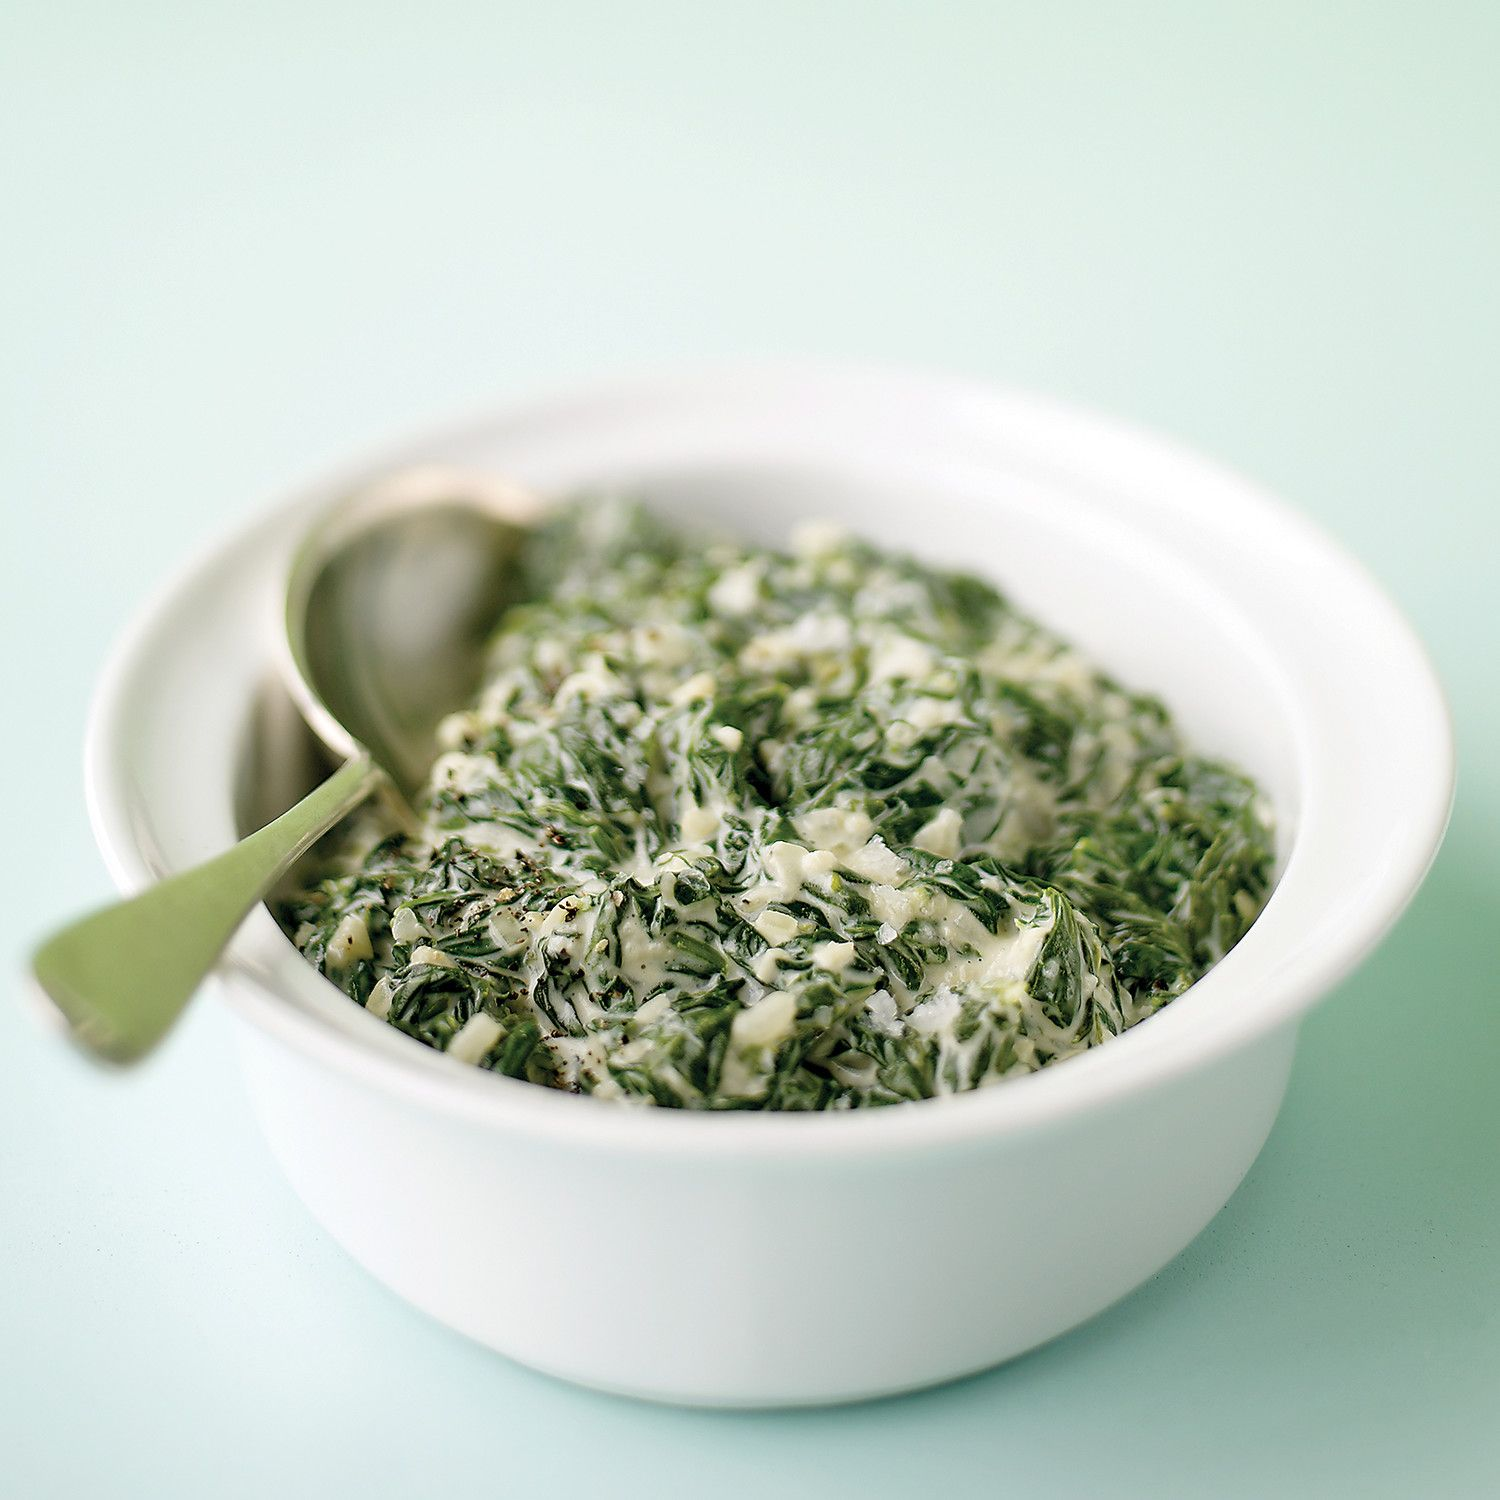 This classic spinach side dish uses cream cheese as a thickener and is popular with both young and old.